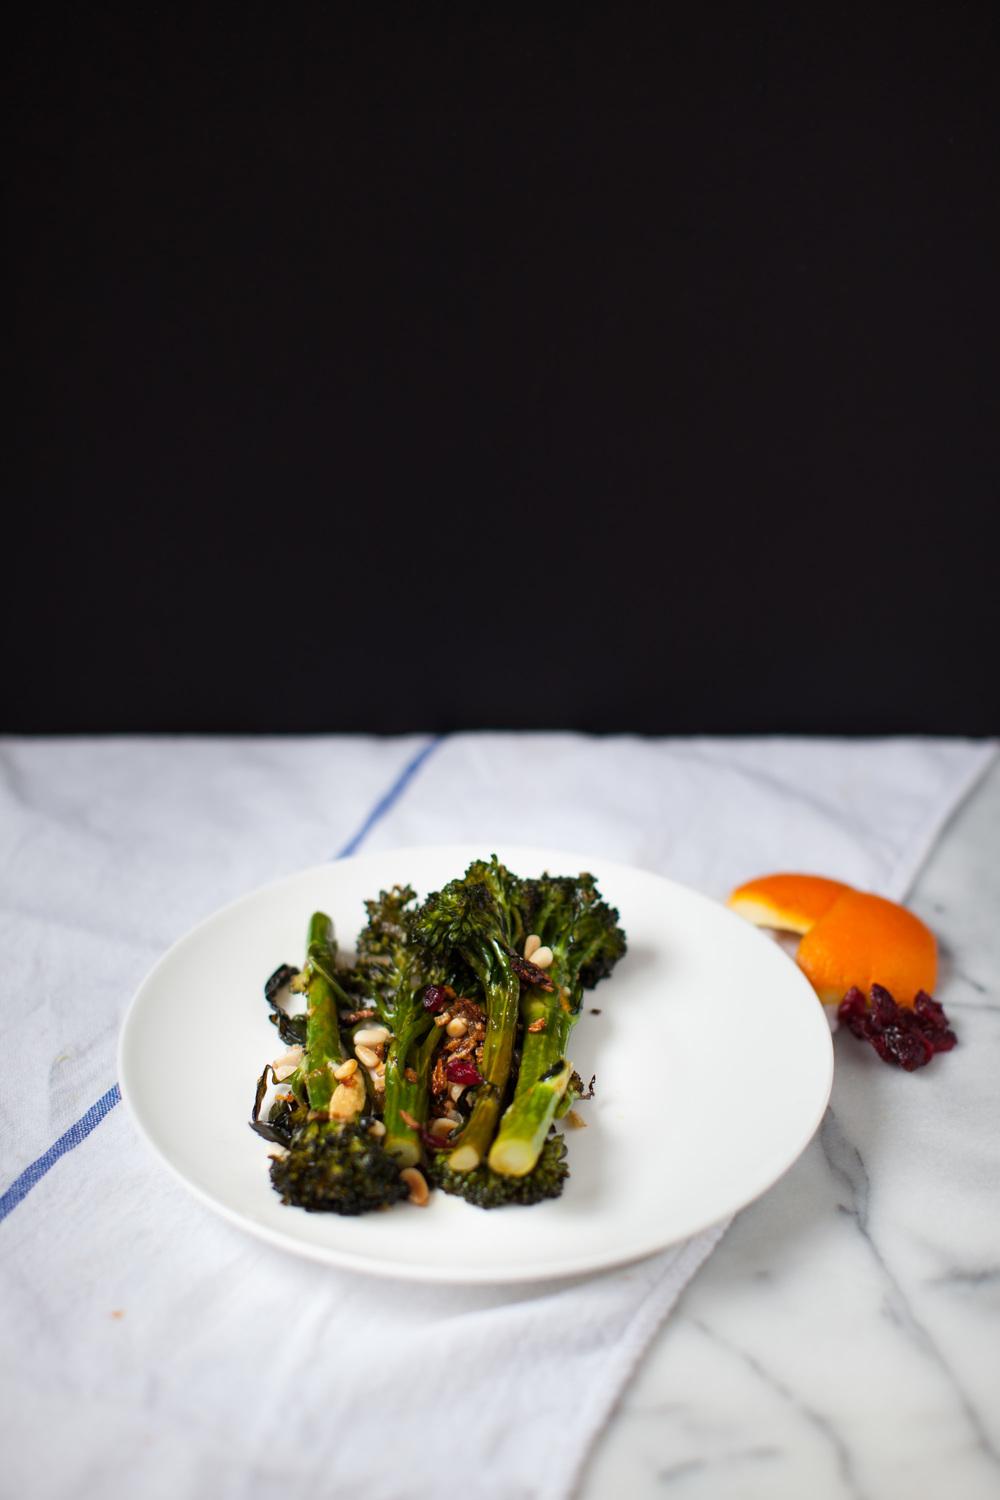 broccolini-recipe-8.jpg